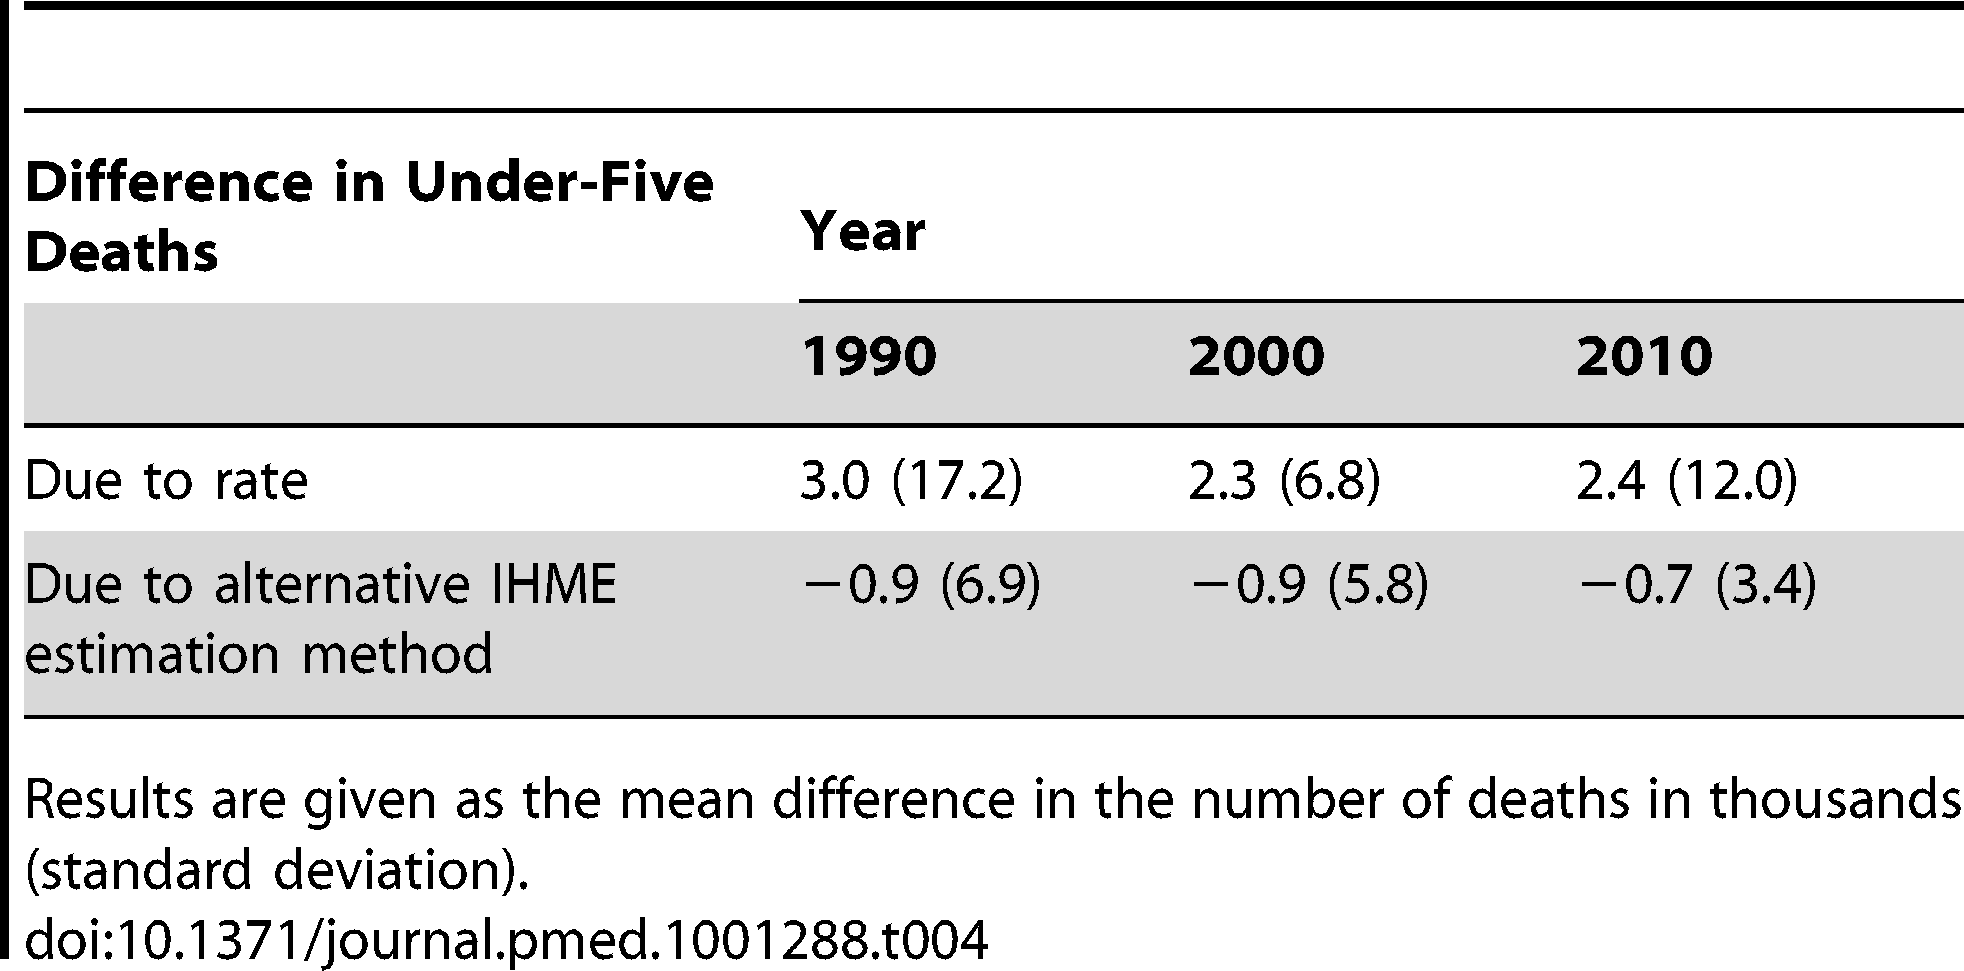 Summary of decomposition results: mean differences in under-five deaths in 1990, 2000, and 2010.